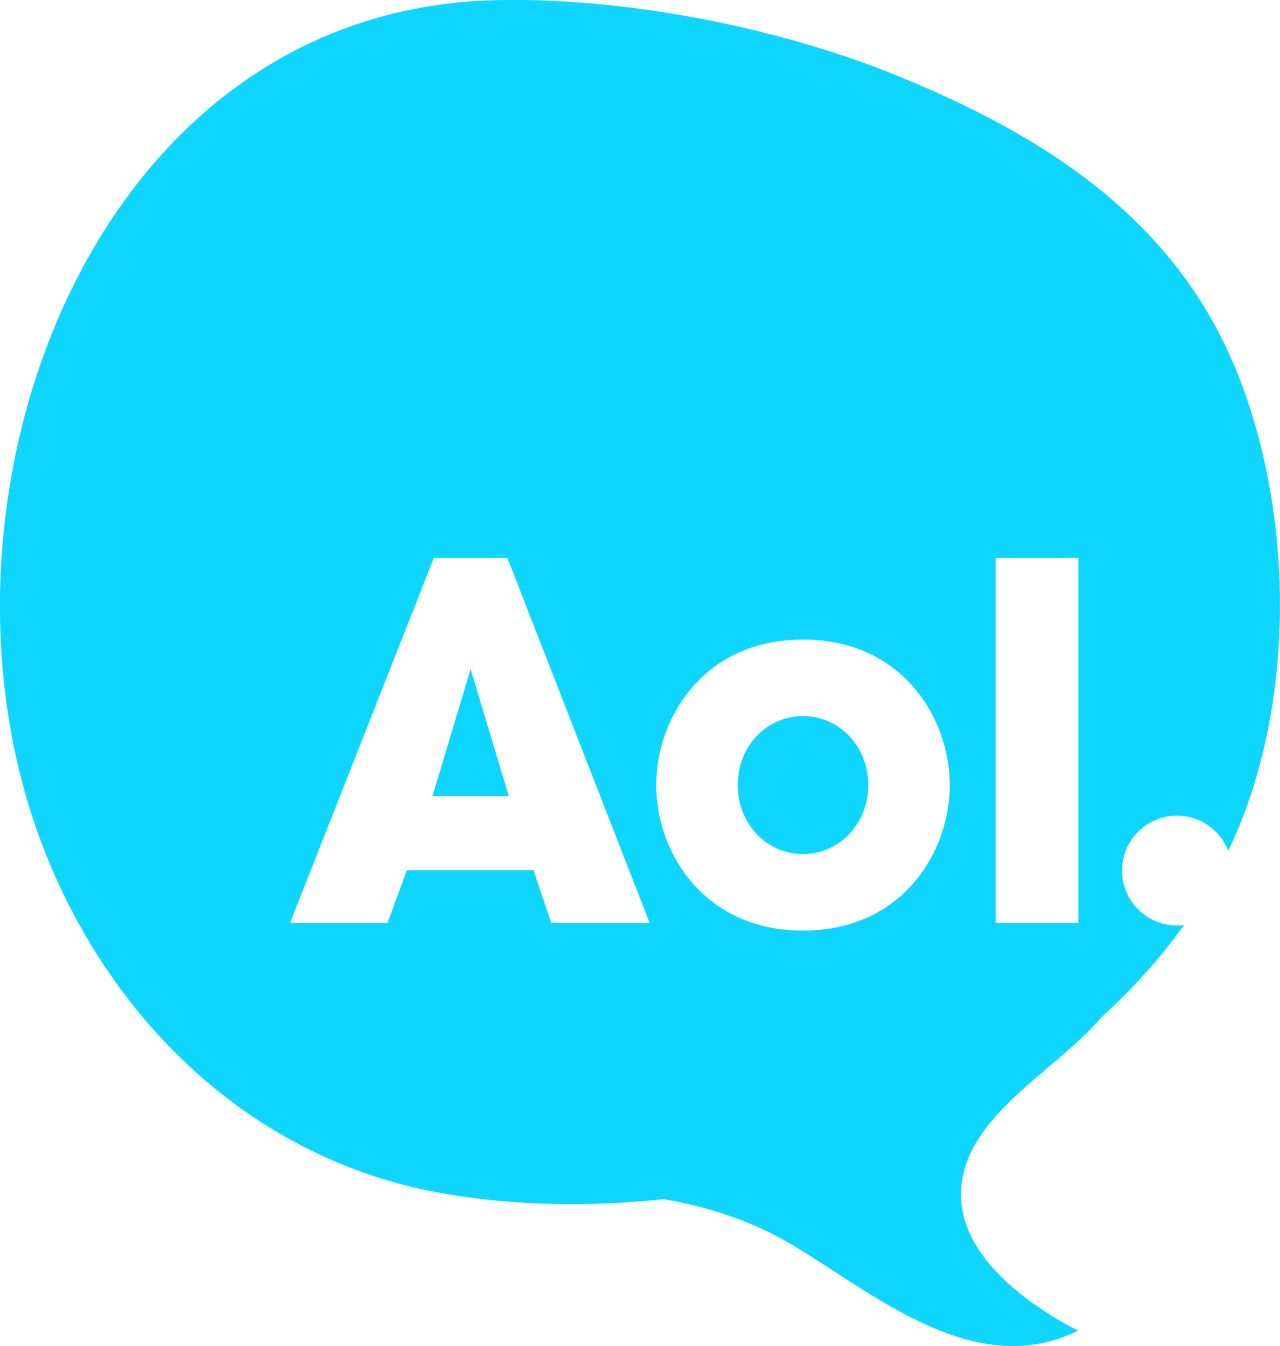 http://mobile.businessweek.com/news/2015-01-19/aol-said-to-consider-shutting-down-some-websites-as-focus-shifts